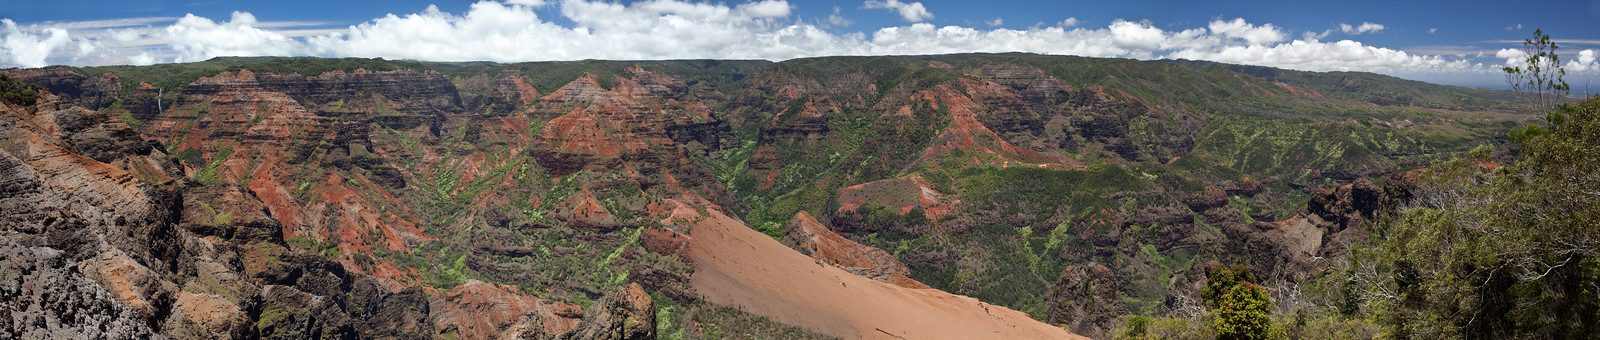 Waimea Canyon Panorama2